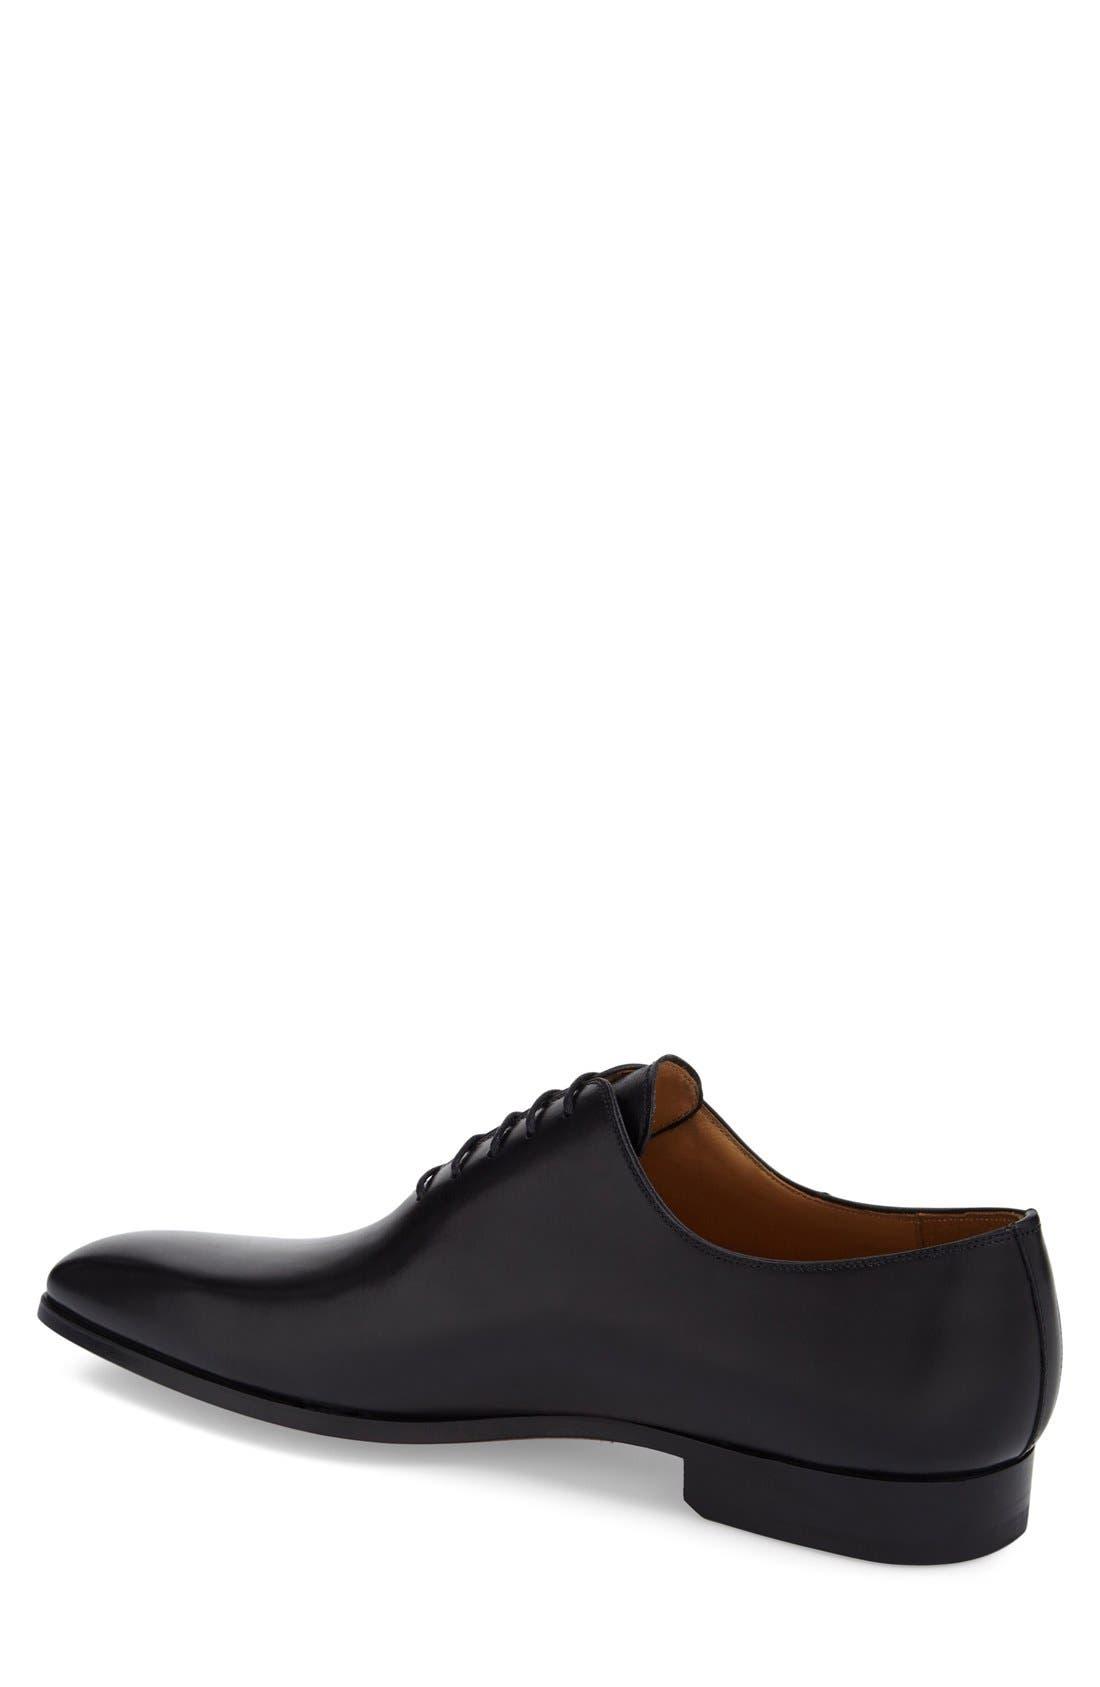 Alternate Image 2  - Magnanni 'Cruz' Plain Toe Oxford (Men)